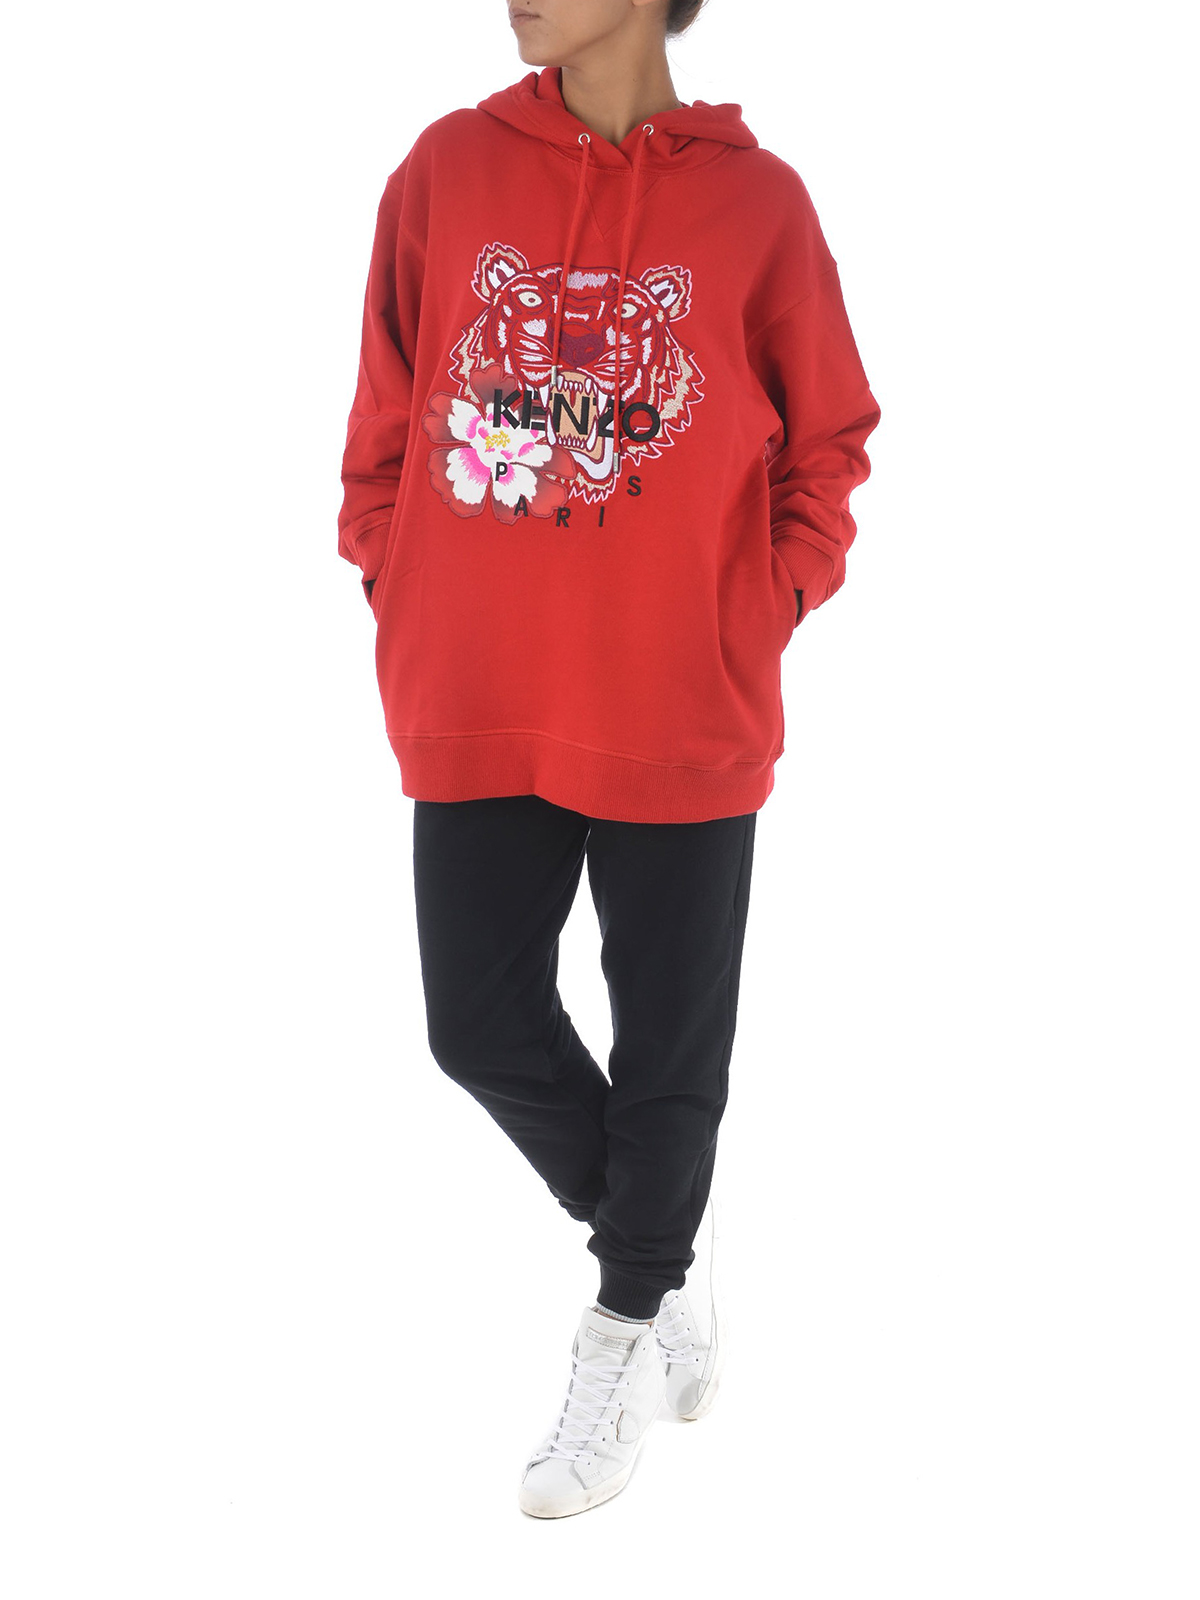 d54899630d KENZO: Sweatshirts & Sweaters online - Red Tiger embroidery sweatshirt